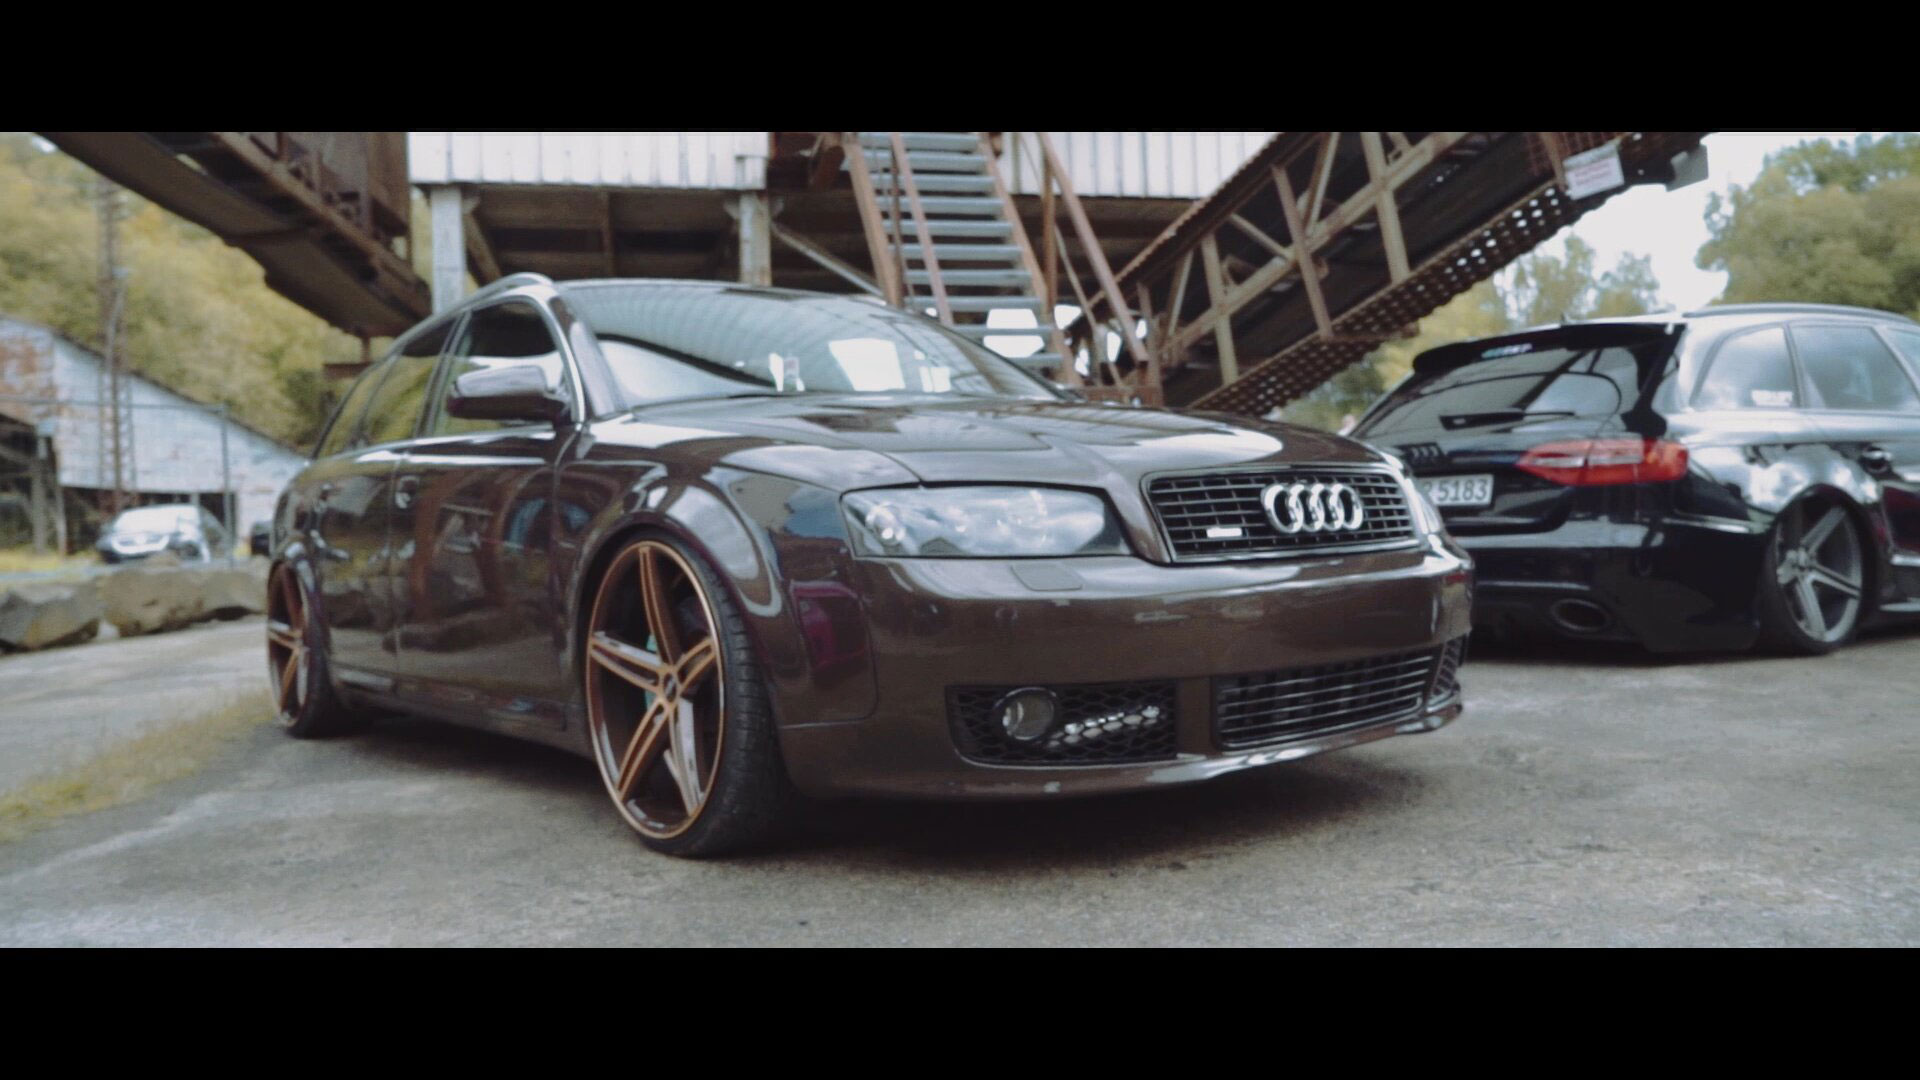 Audi A4 Avant mit OX18 Brown Gold Polish